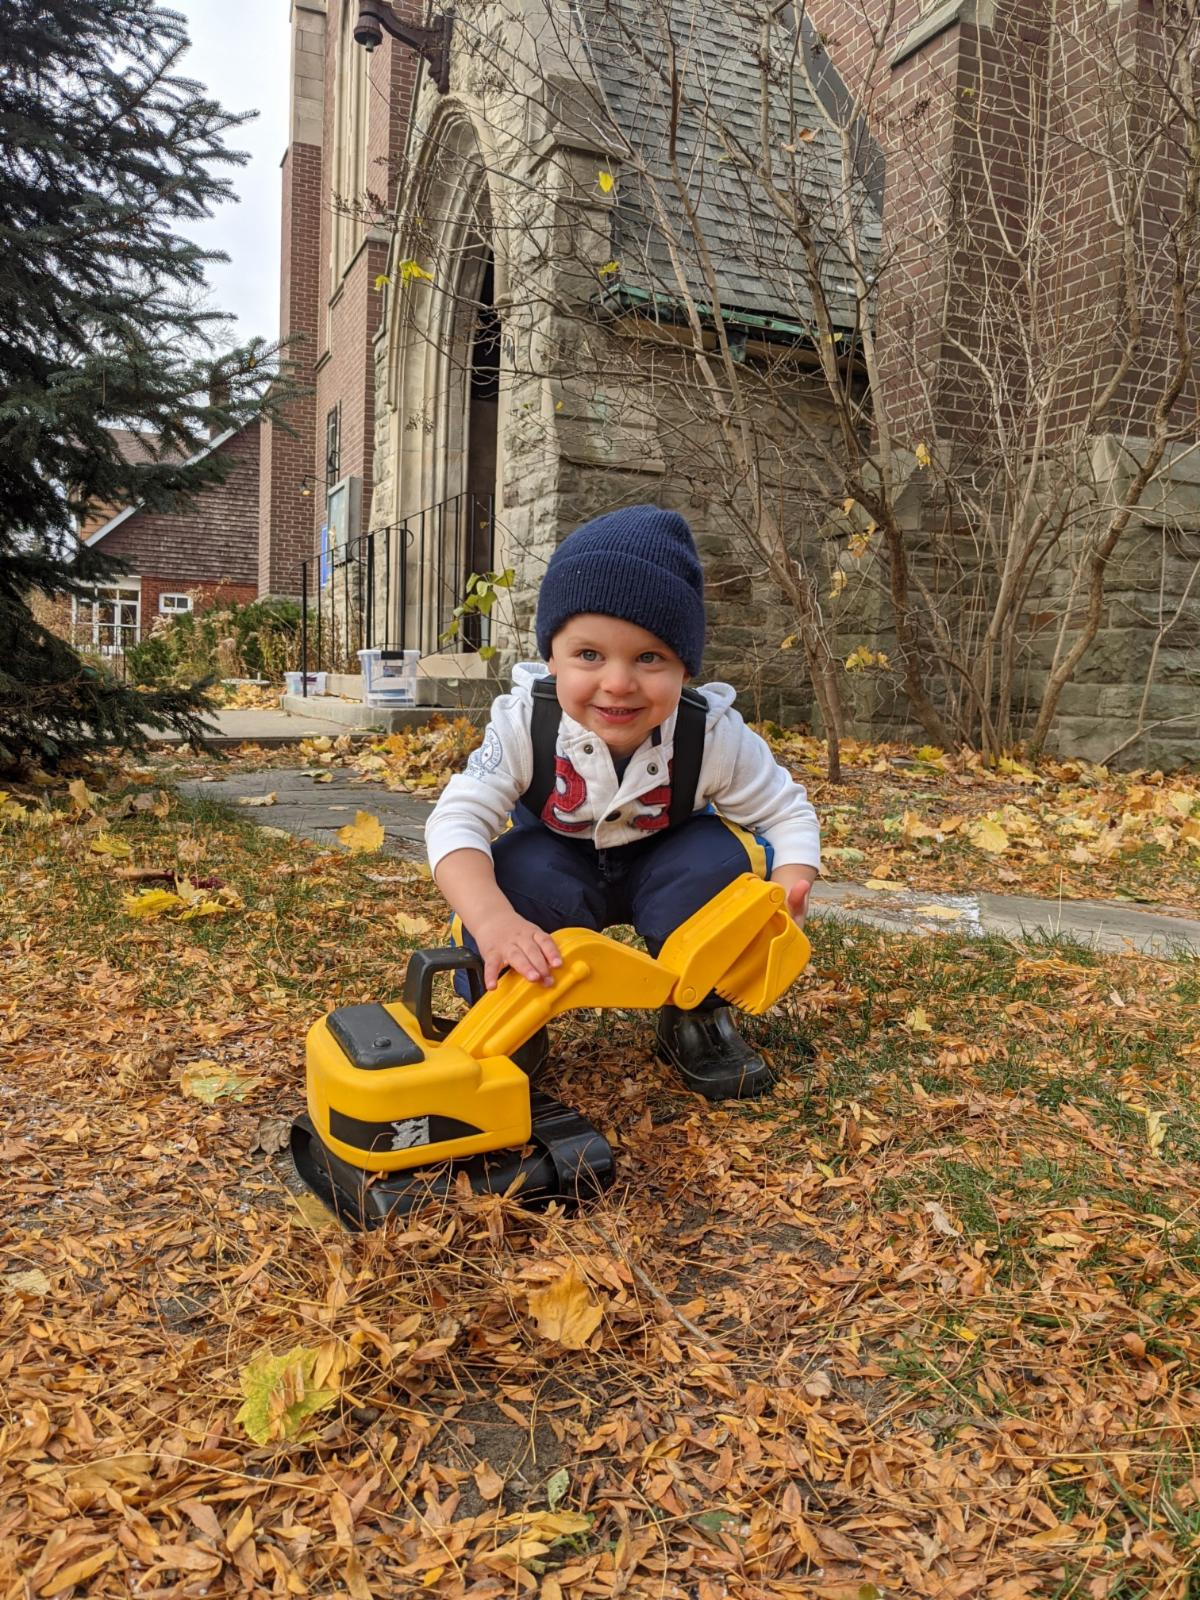 White child wearing a winter hat and show pants holds a yellow toy digger while sqatting on the ground outside a builiding.